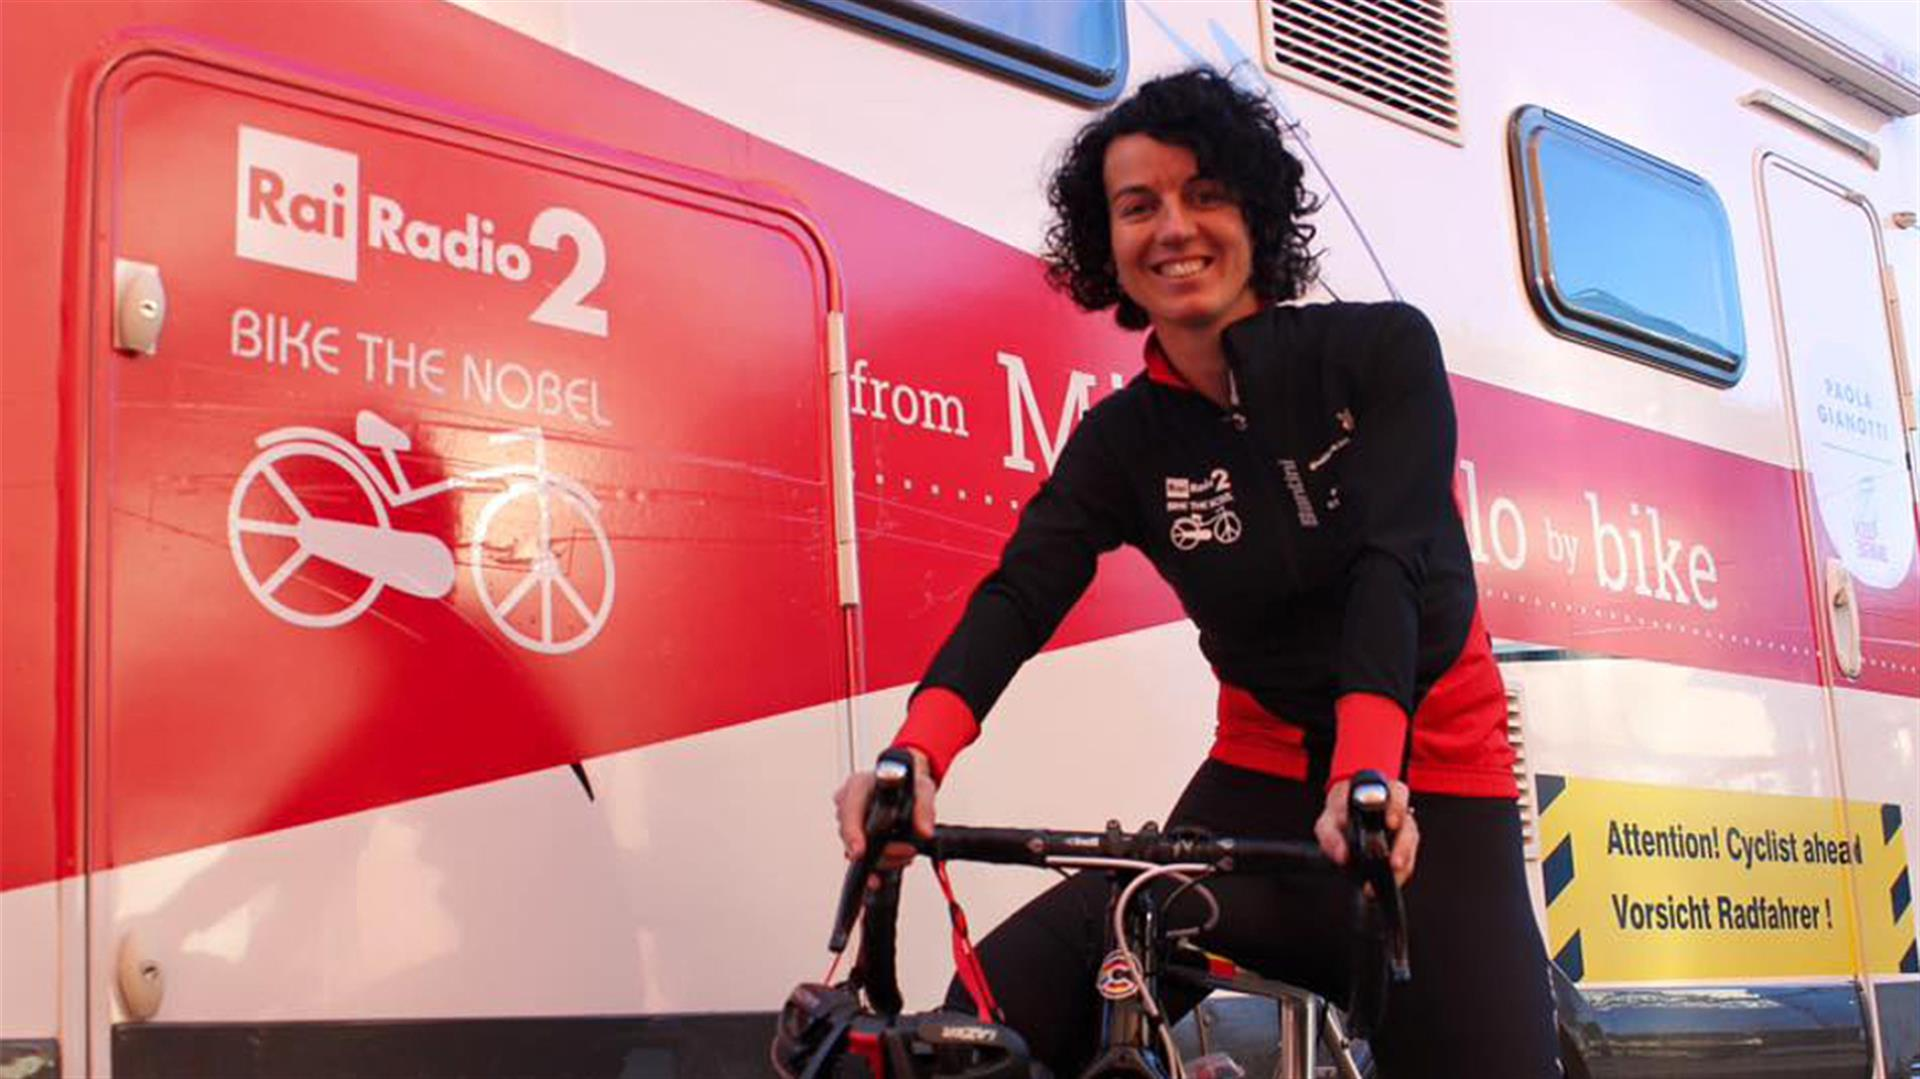 'Bike the Nobel' per le donne afghane